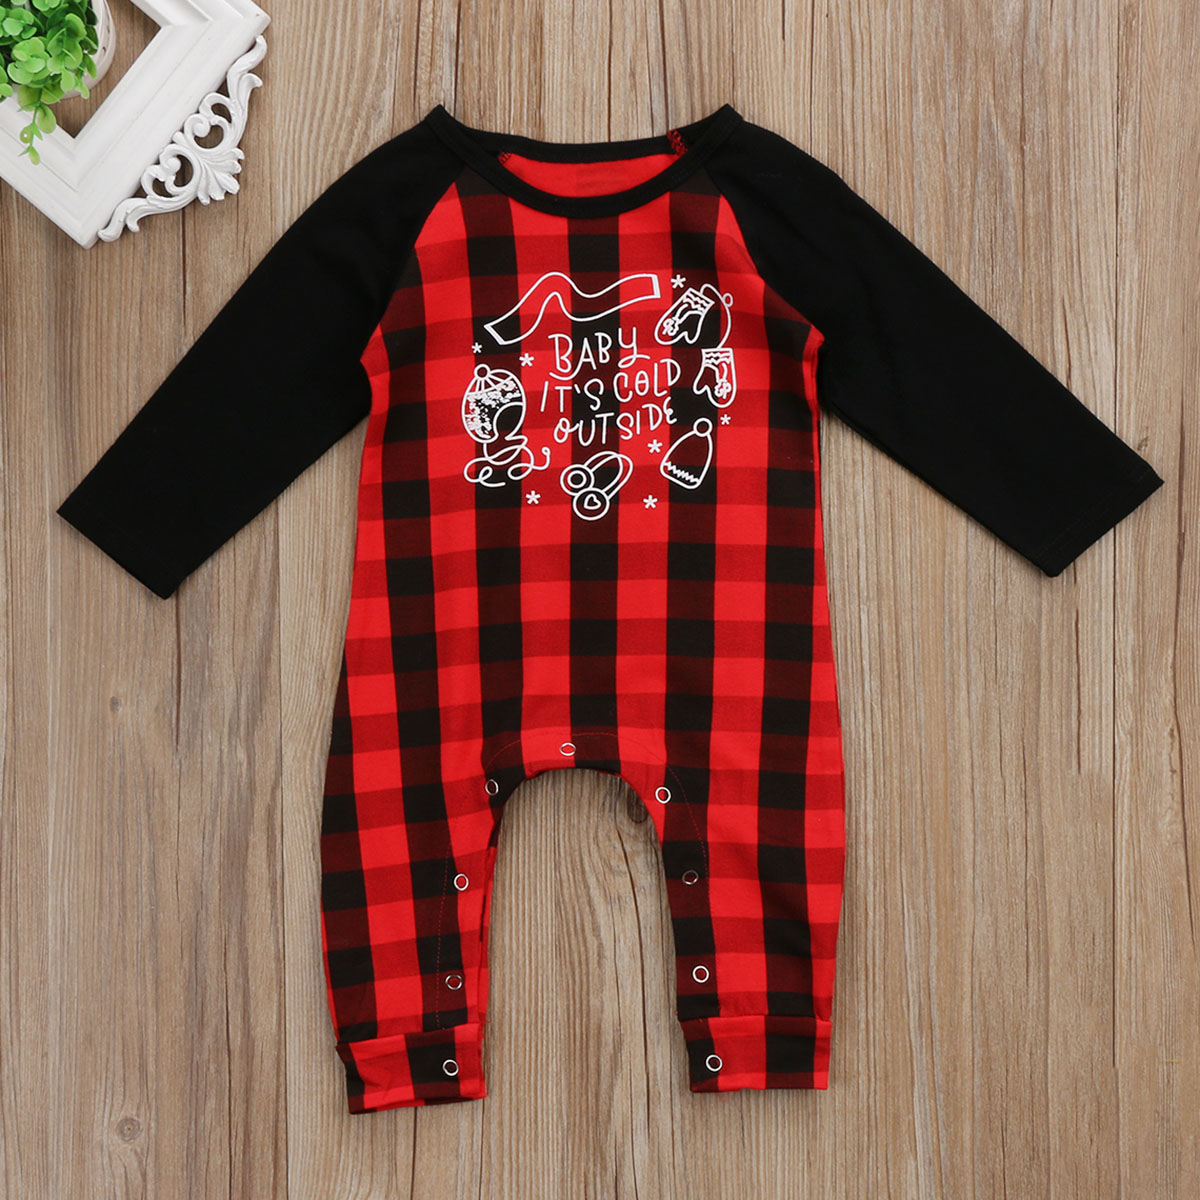 Toddler Newborn Baby Boy Girl Plaid Romper Jumpsuit Playsuit Long Sleeve Autumn Cotton Infant Clothes newborn infant baby romper cute rabbit new born jumpsuit clothing girl boy baby bear clothes toddler romper costumes